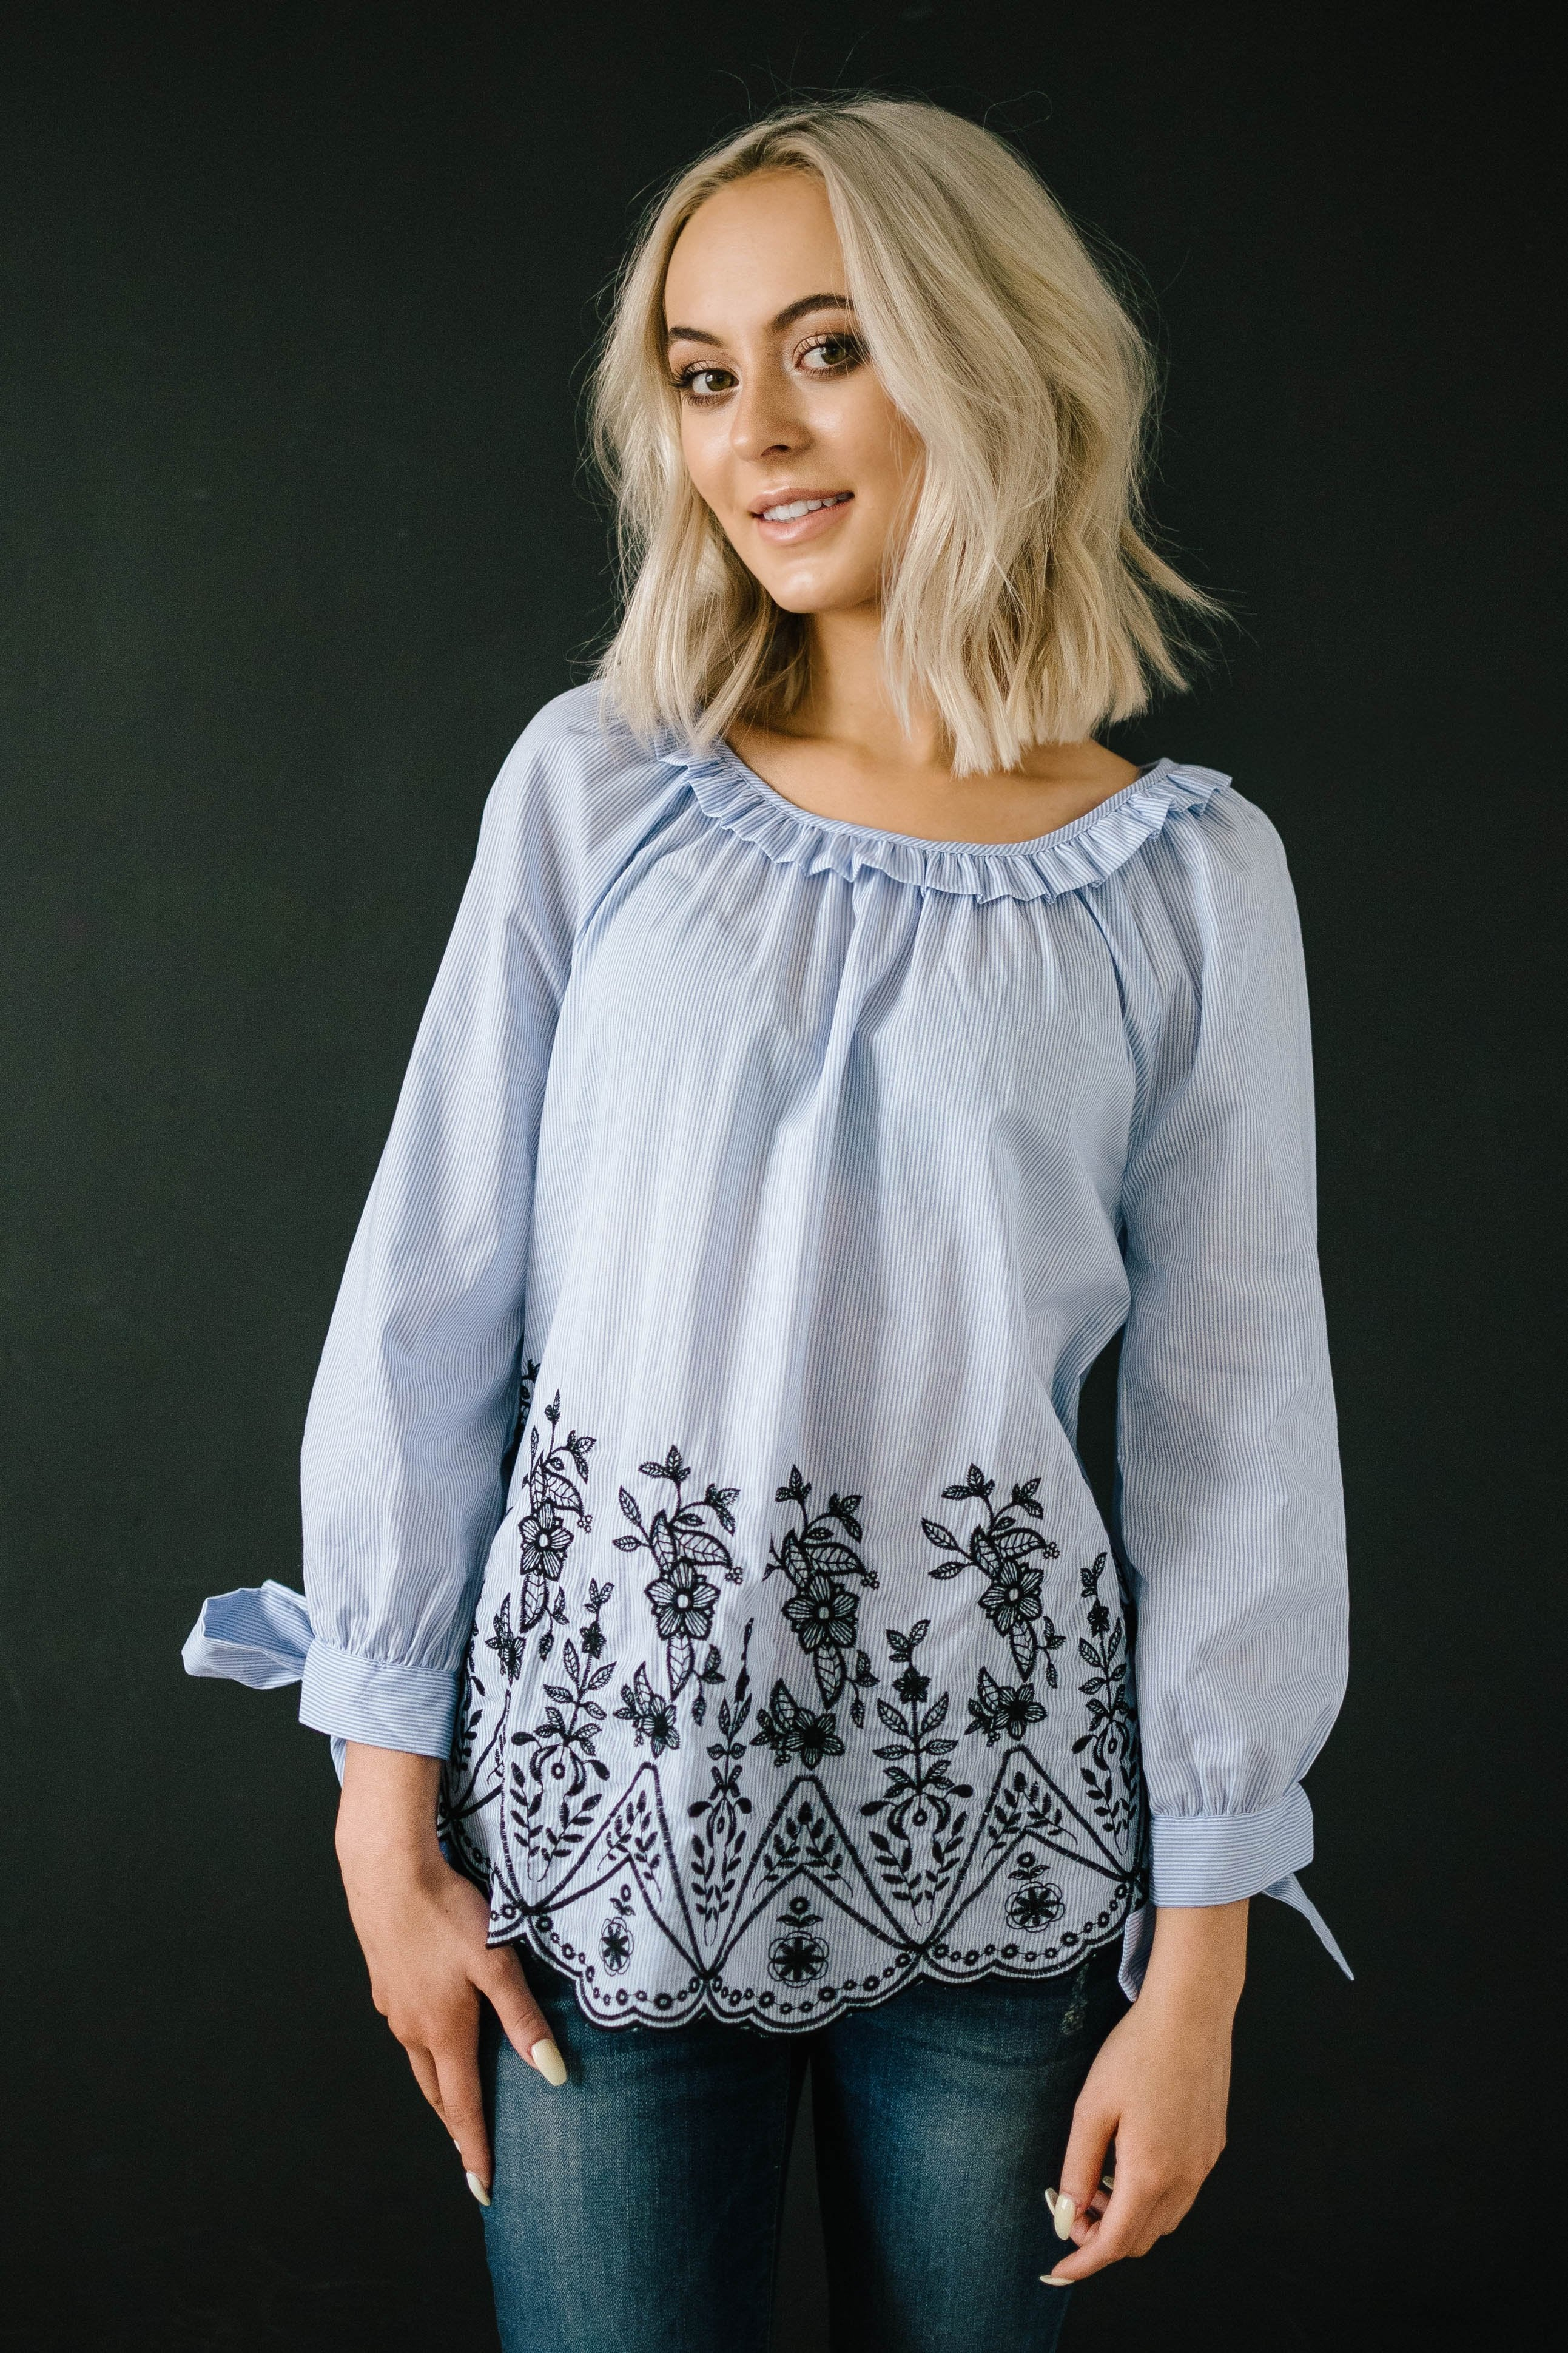 Pins and Flowers Top in Blue